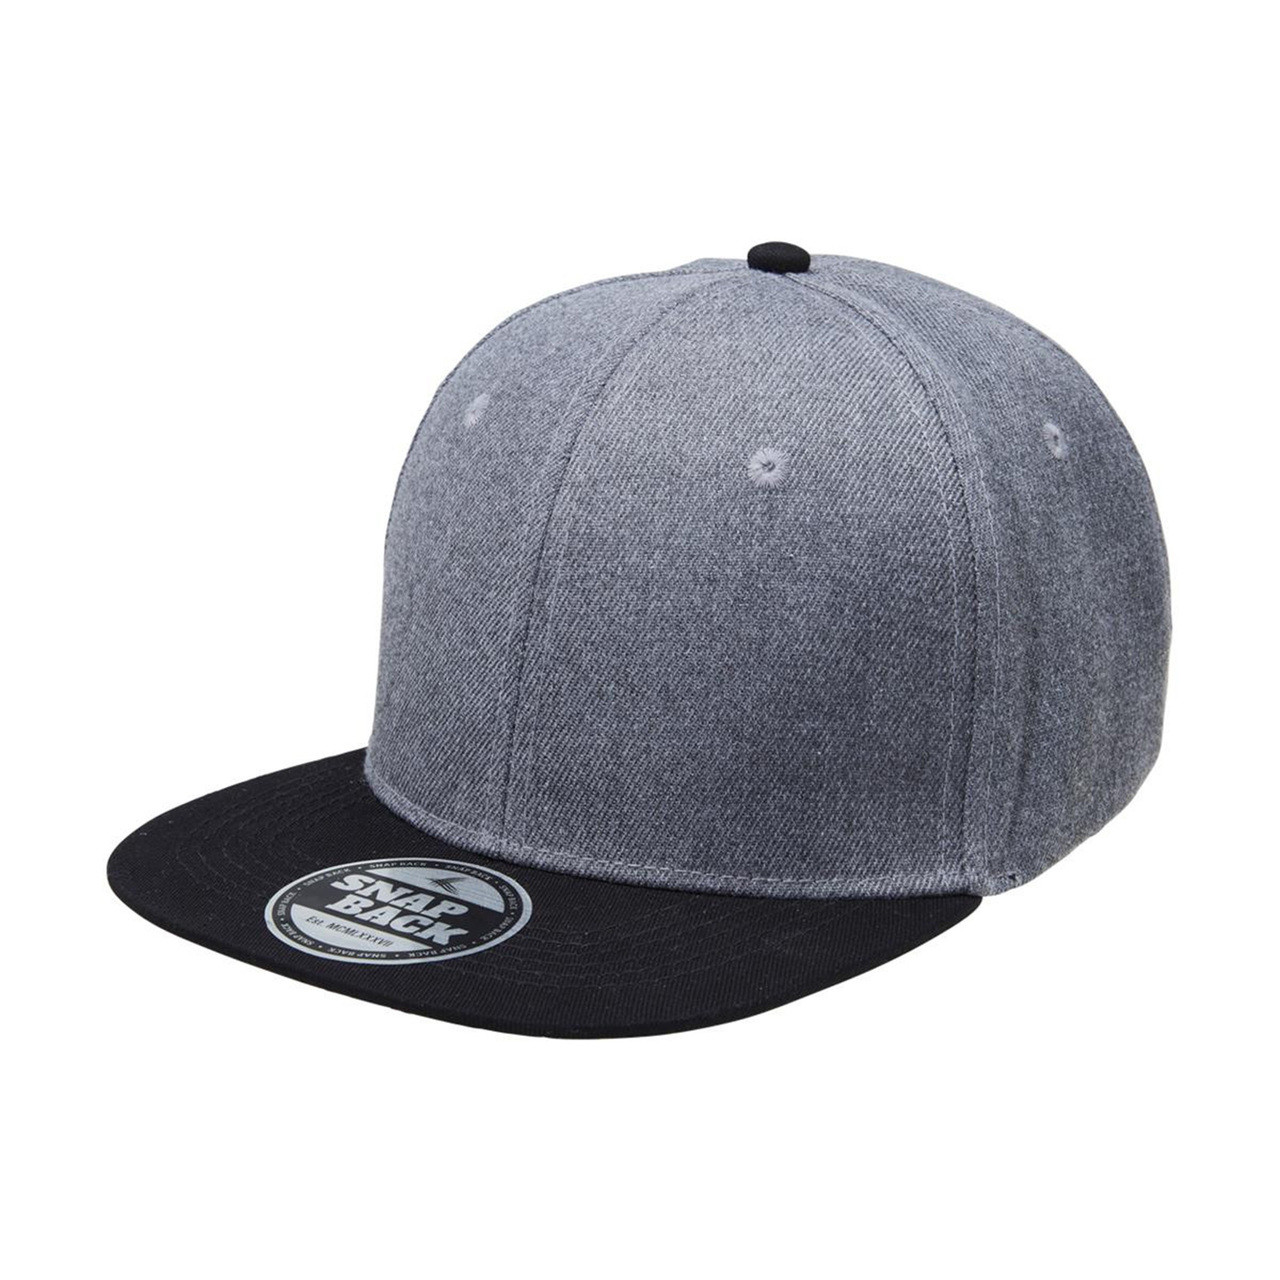 156f92b095765 Wholesale Heathered Two Tone Snapback Caps Online